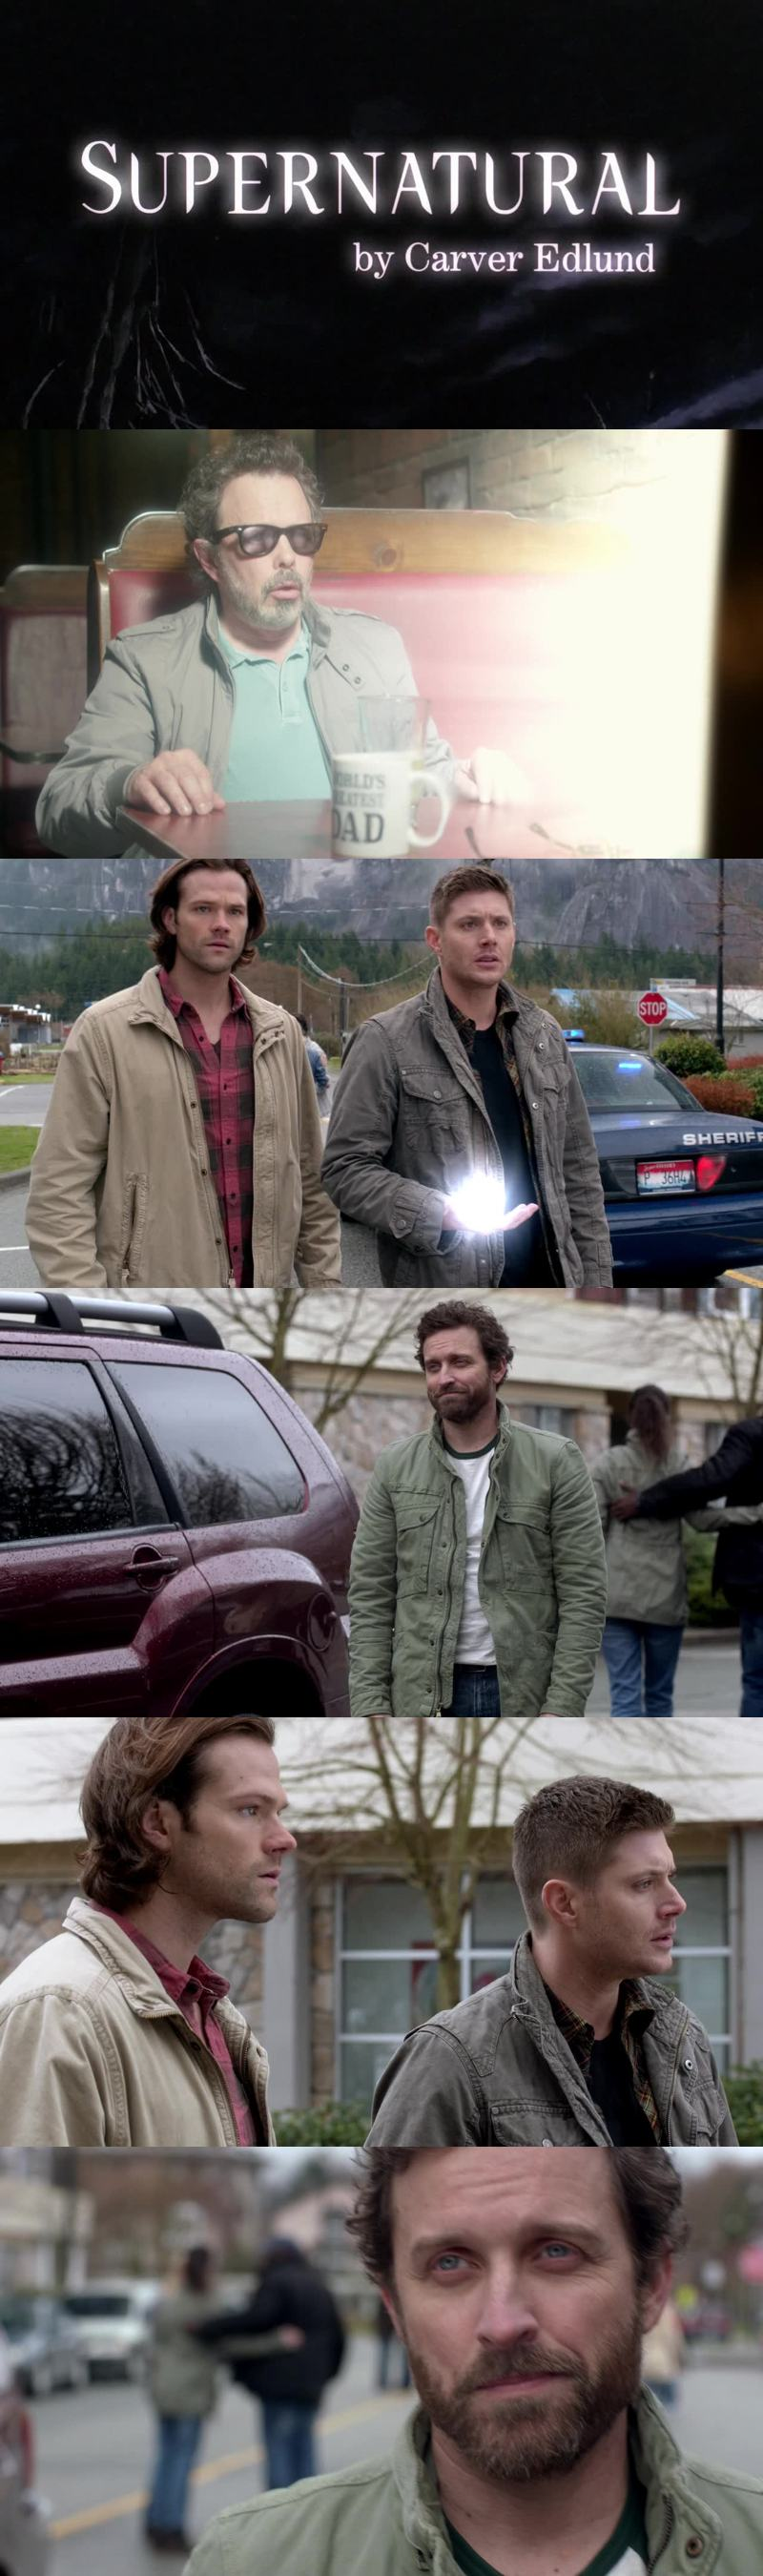 Ok this is one of the best episodes I've ever seen!!!! Can't wait to see next week episode! Metatron was awesome, I really liked him!